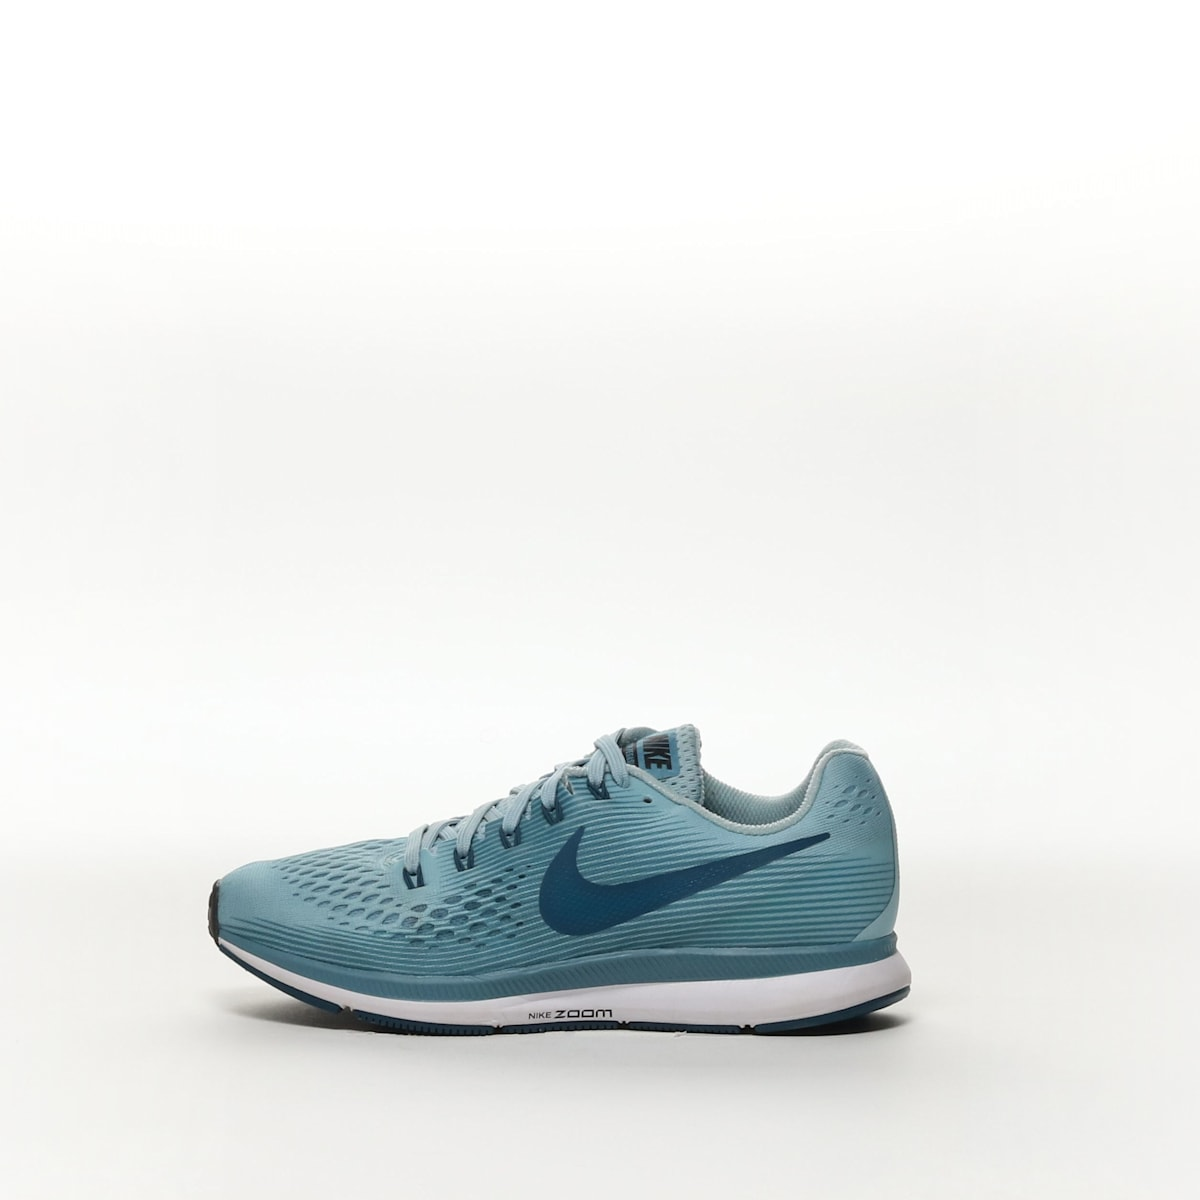 Nike Air Zoom Pegasus 34 - OCEAN BLISS NOISE AQUA BLACK BLUE FORCE ... 170d3b79f9